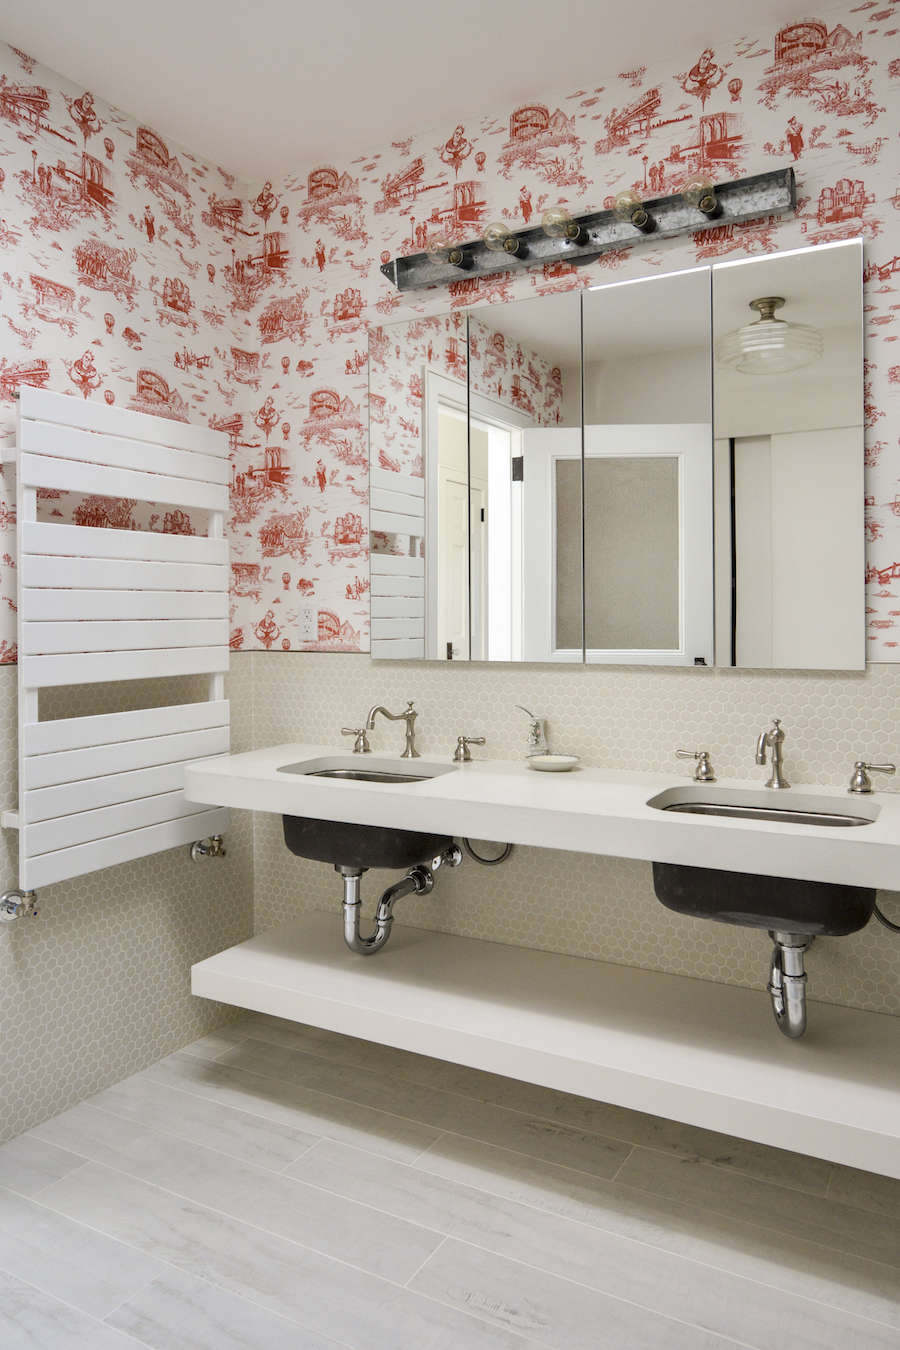 Brooklyn toile in architects Gregory Merkel and Catalina Roja's Brooklyn bathroom | Remodelista